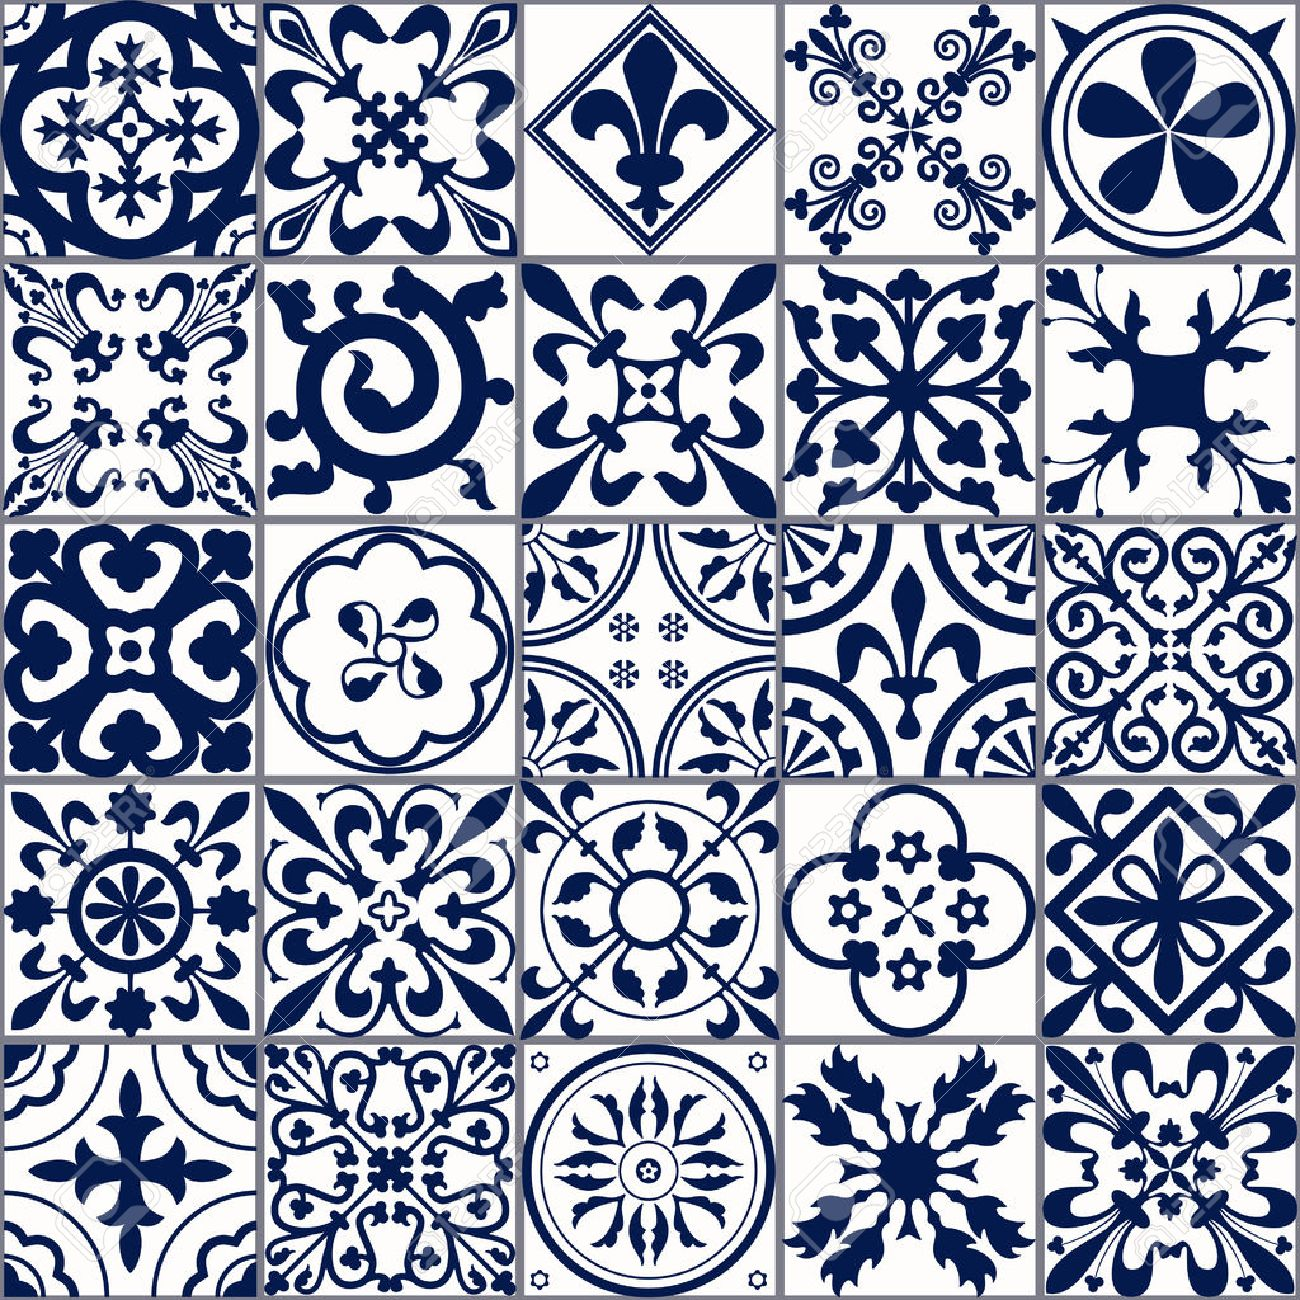 Vector Illustration of Moroccan tiles Seamless Pattern for Design, Website, Background, Banner.Spanish element for Wallpaper, Ceramic or Textile. Middle Ages Ornament Texture Template. White and Blue - 54828840